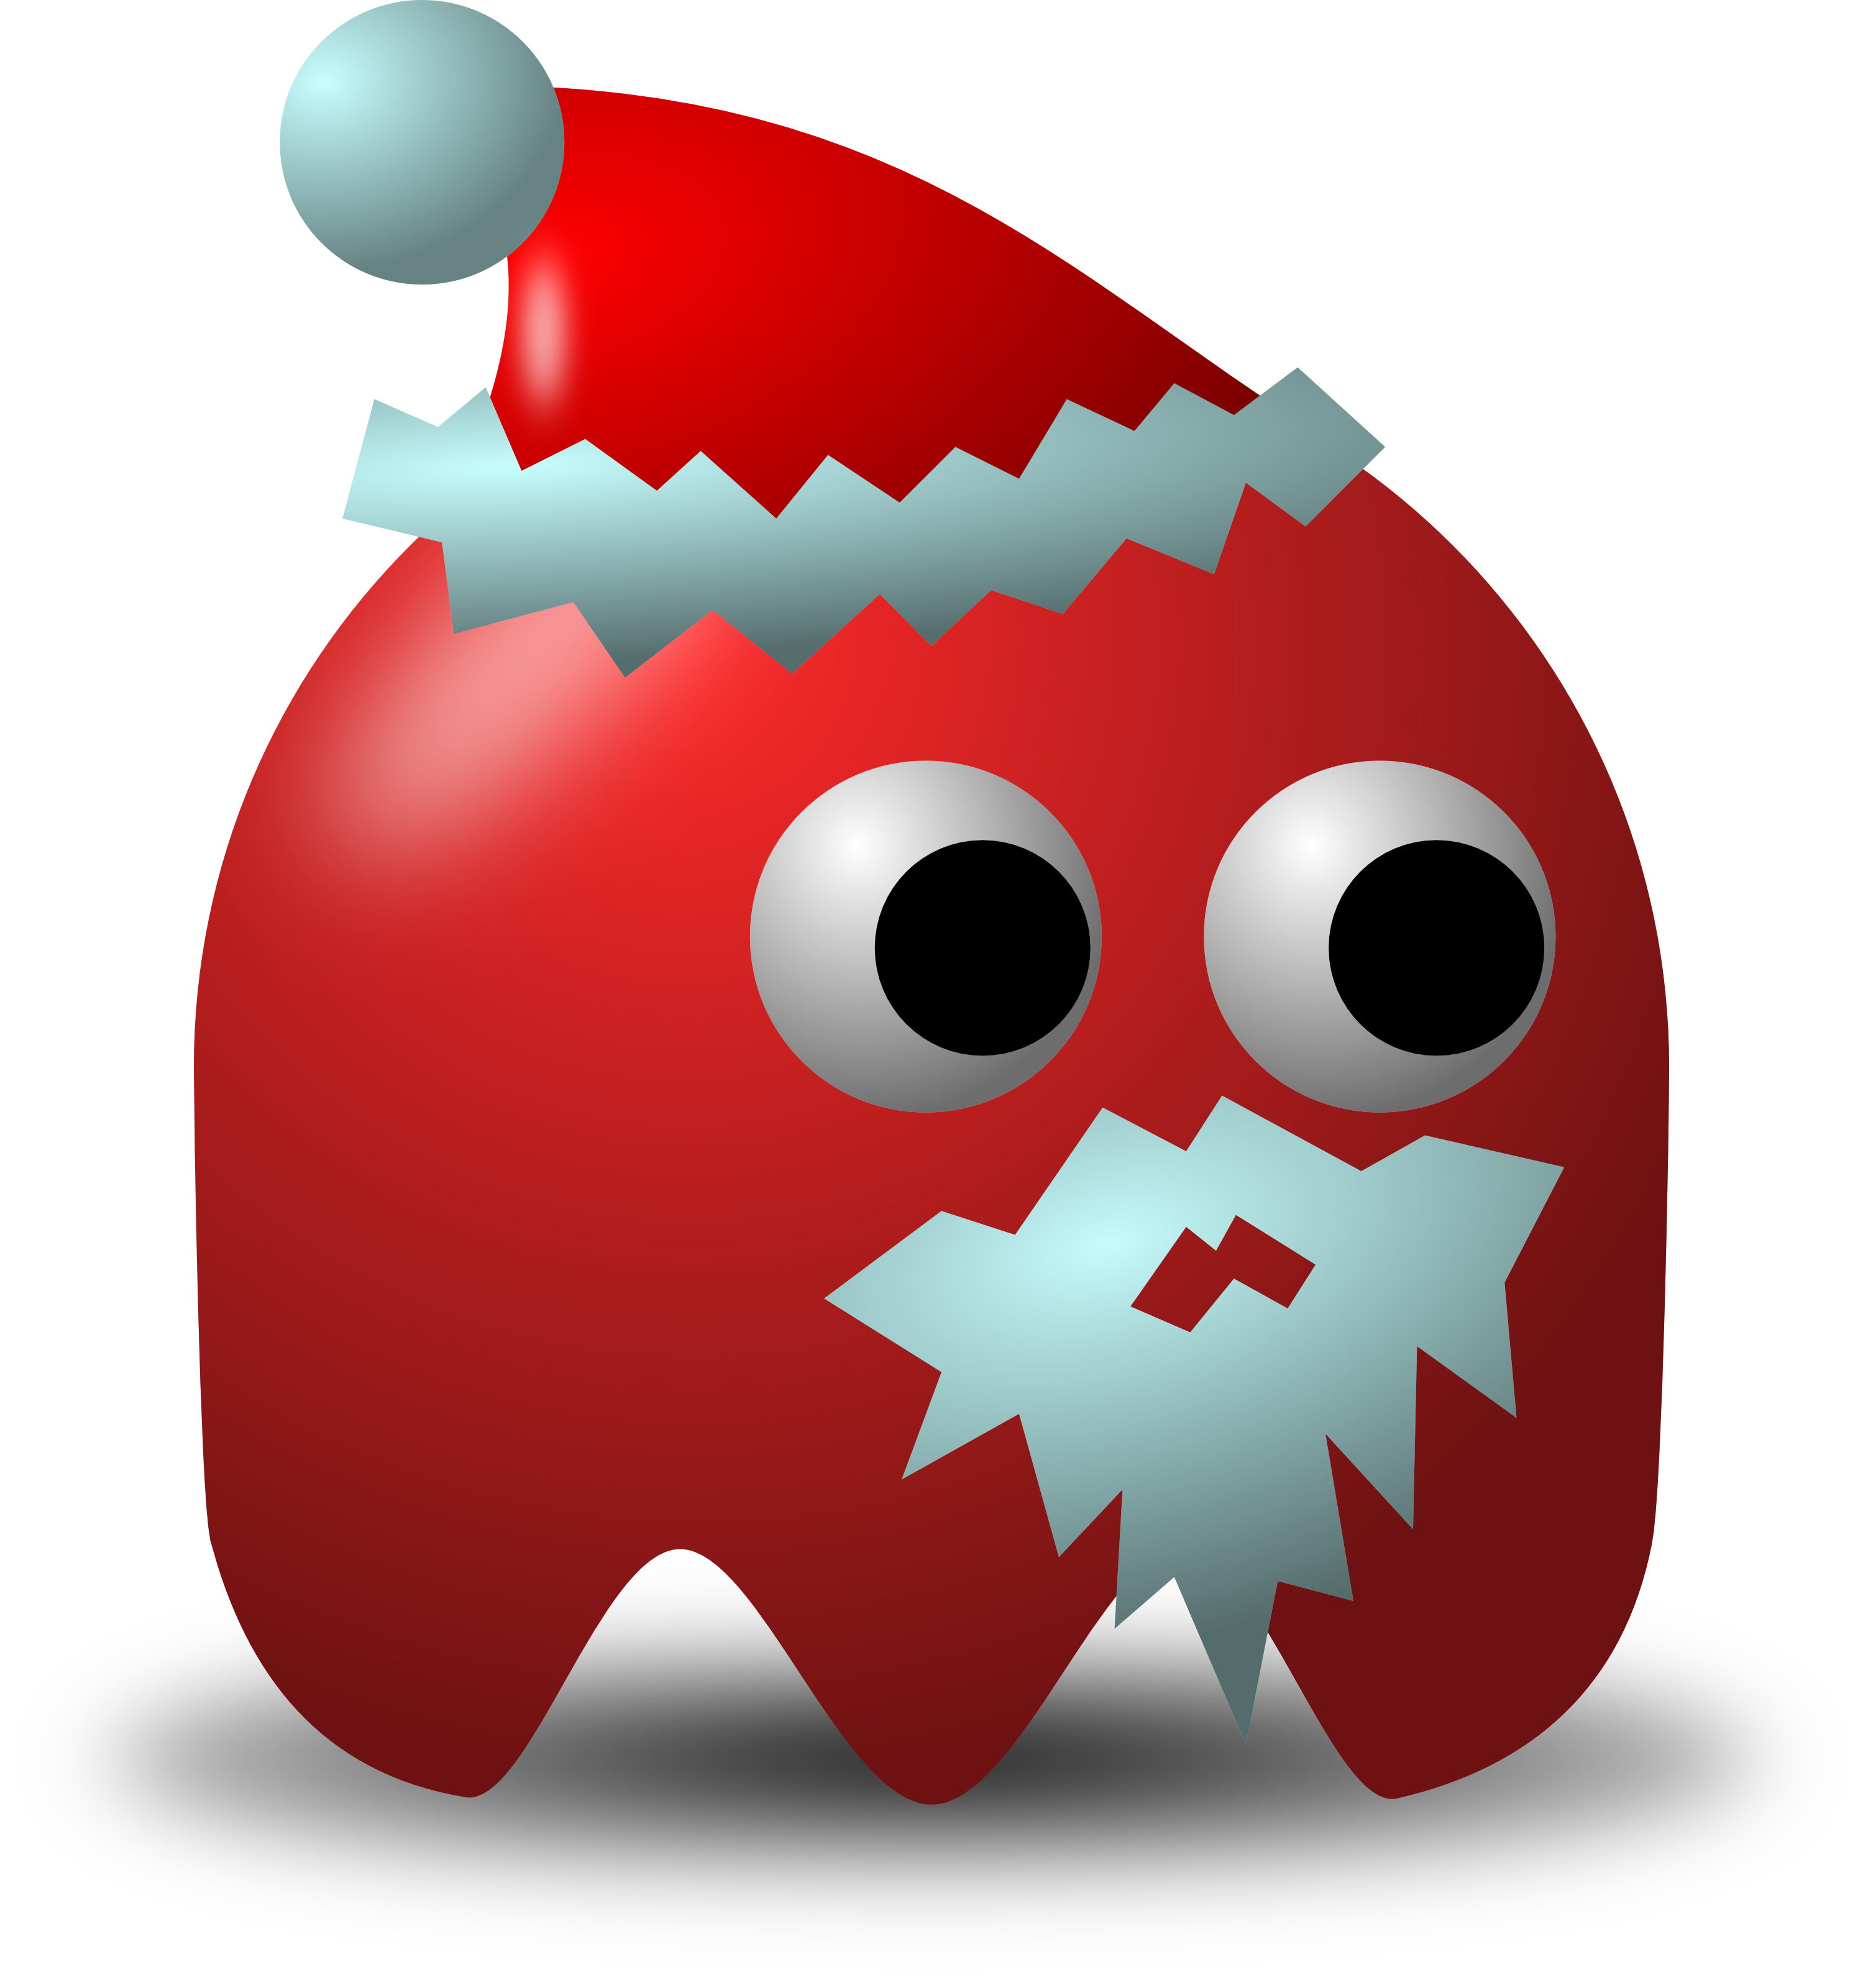 Vector Clipart Illustration Of Santa Claus Avatar Character